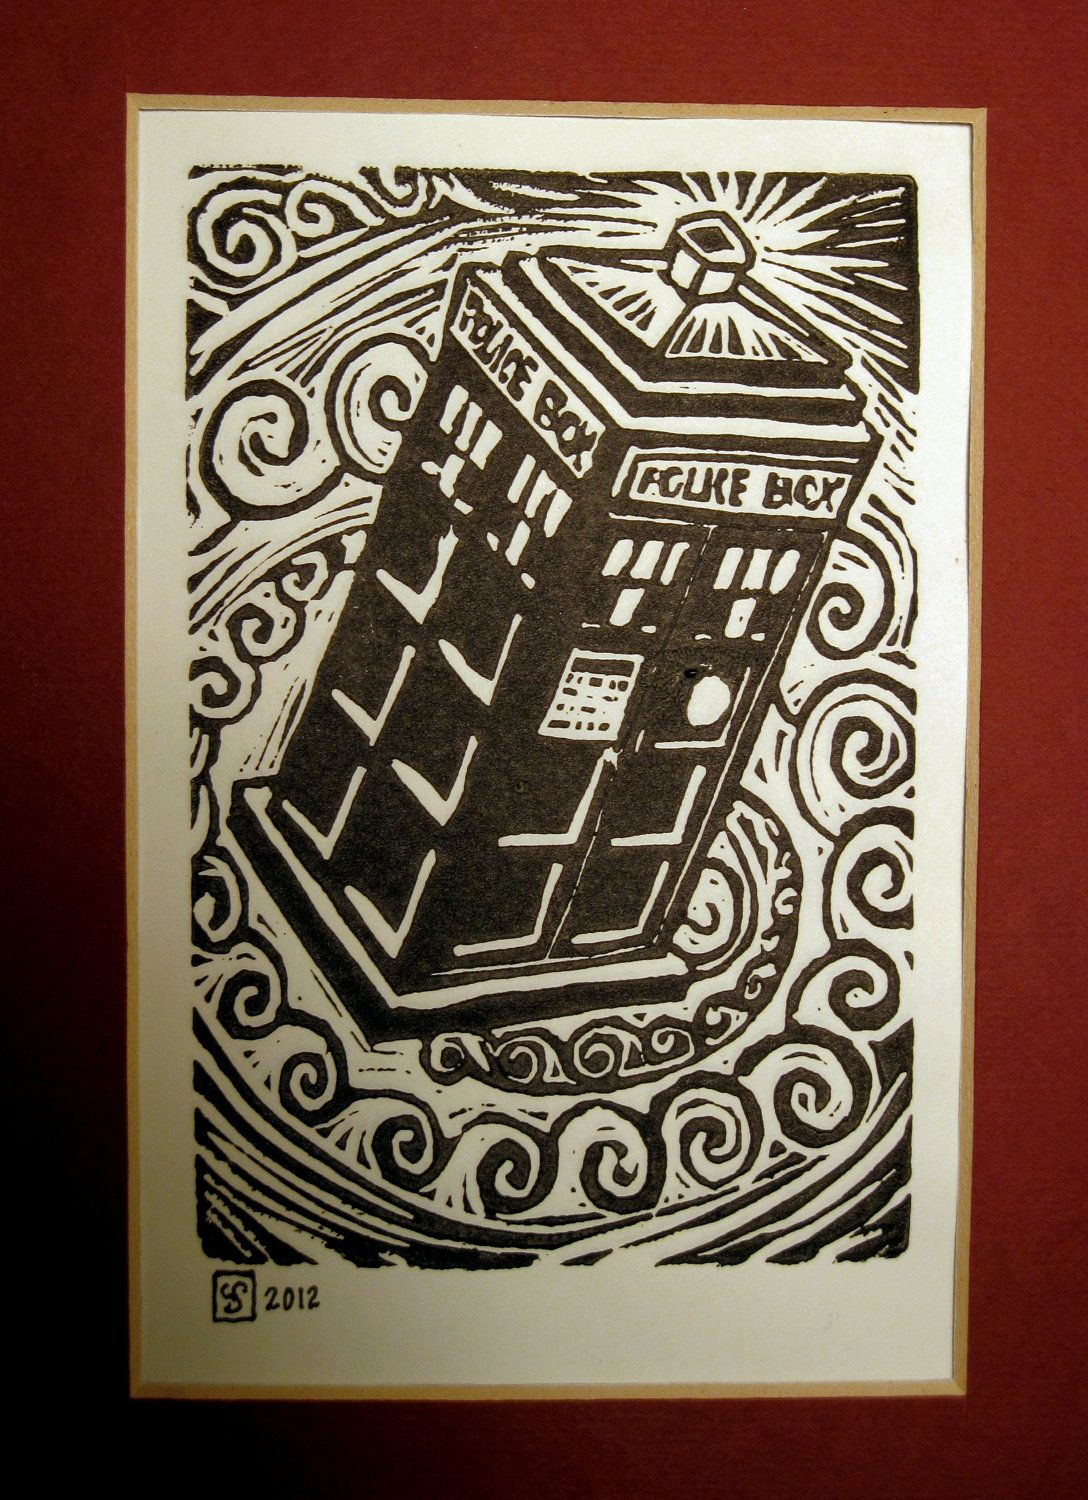 f20ddb2b3fbbf Doctor Who TARDIS block print, black and white, hand pulled. $8.00 ...